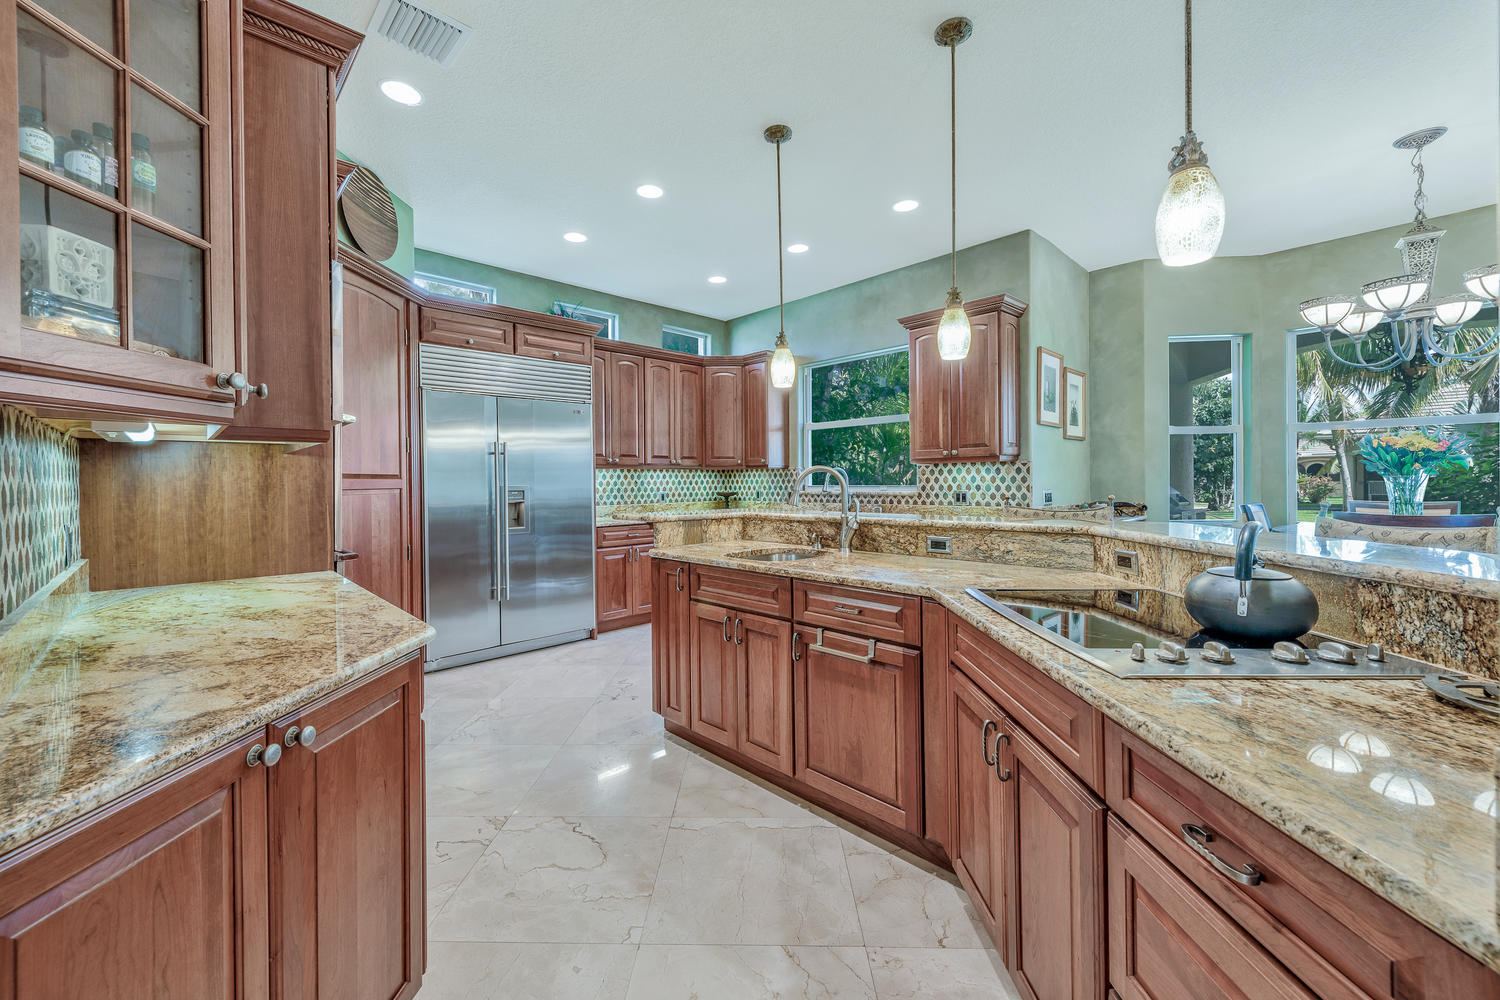 14235 Equestrian Way-large-017-26-Kitche